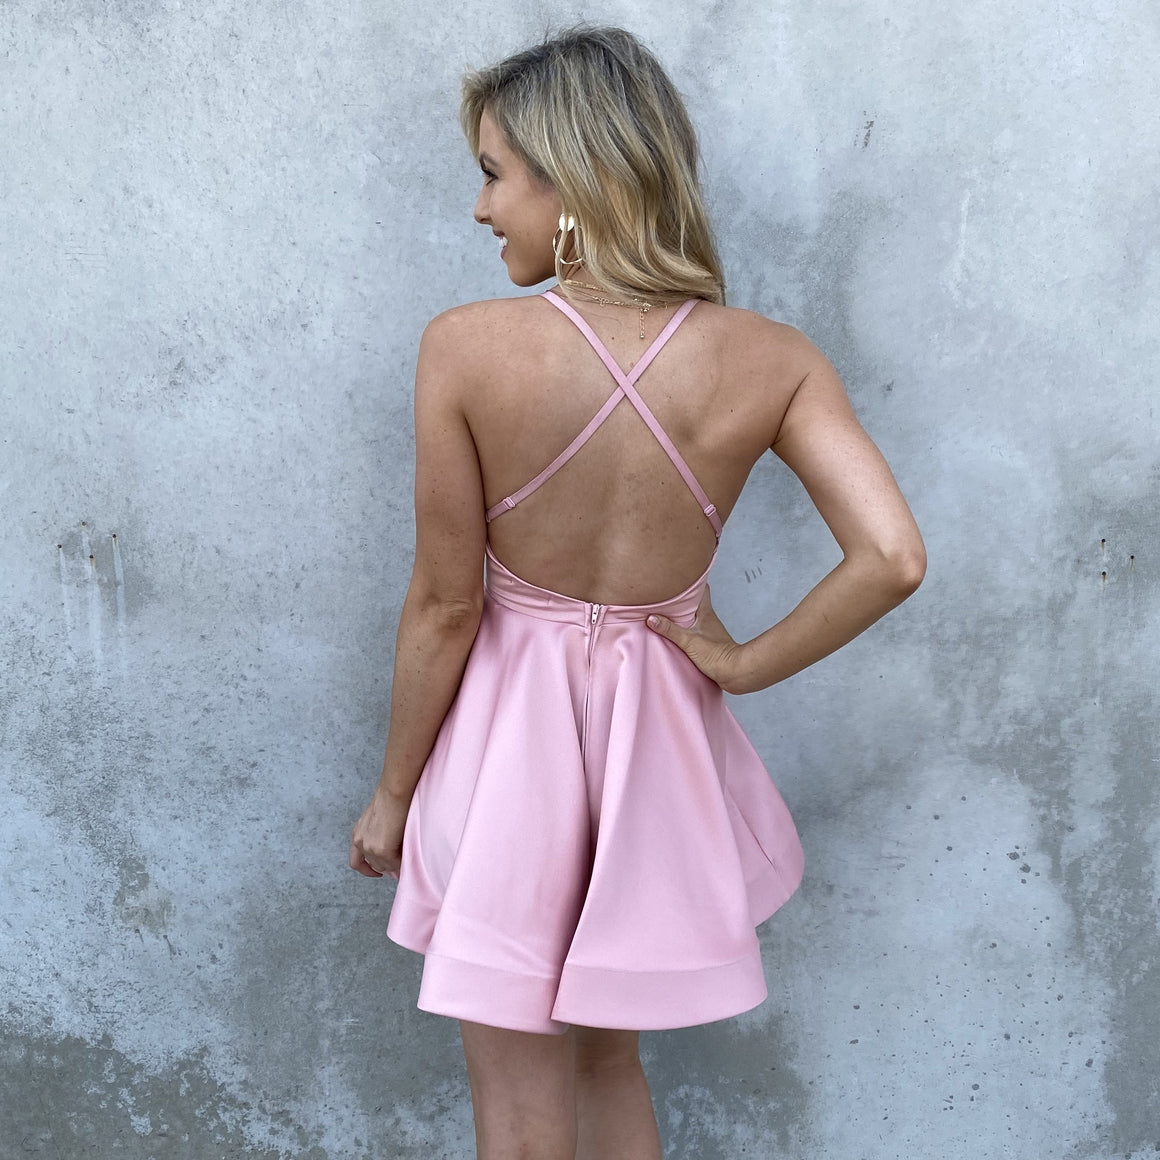 Picture Perfect Skater Dress In Pink - Dainty Hooligan